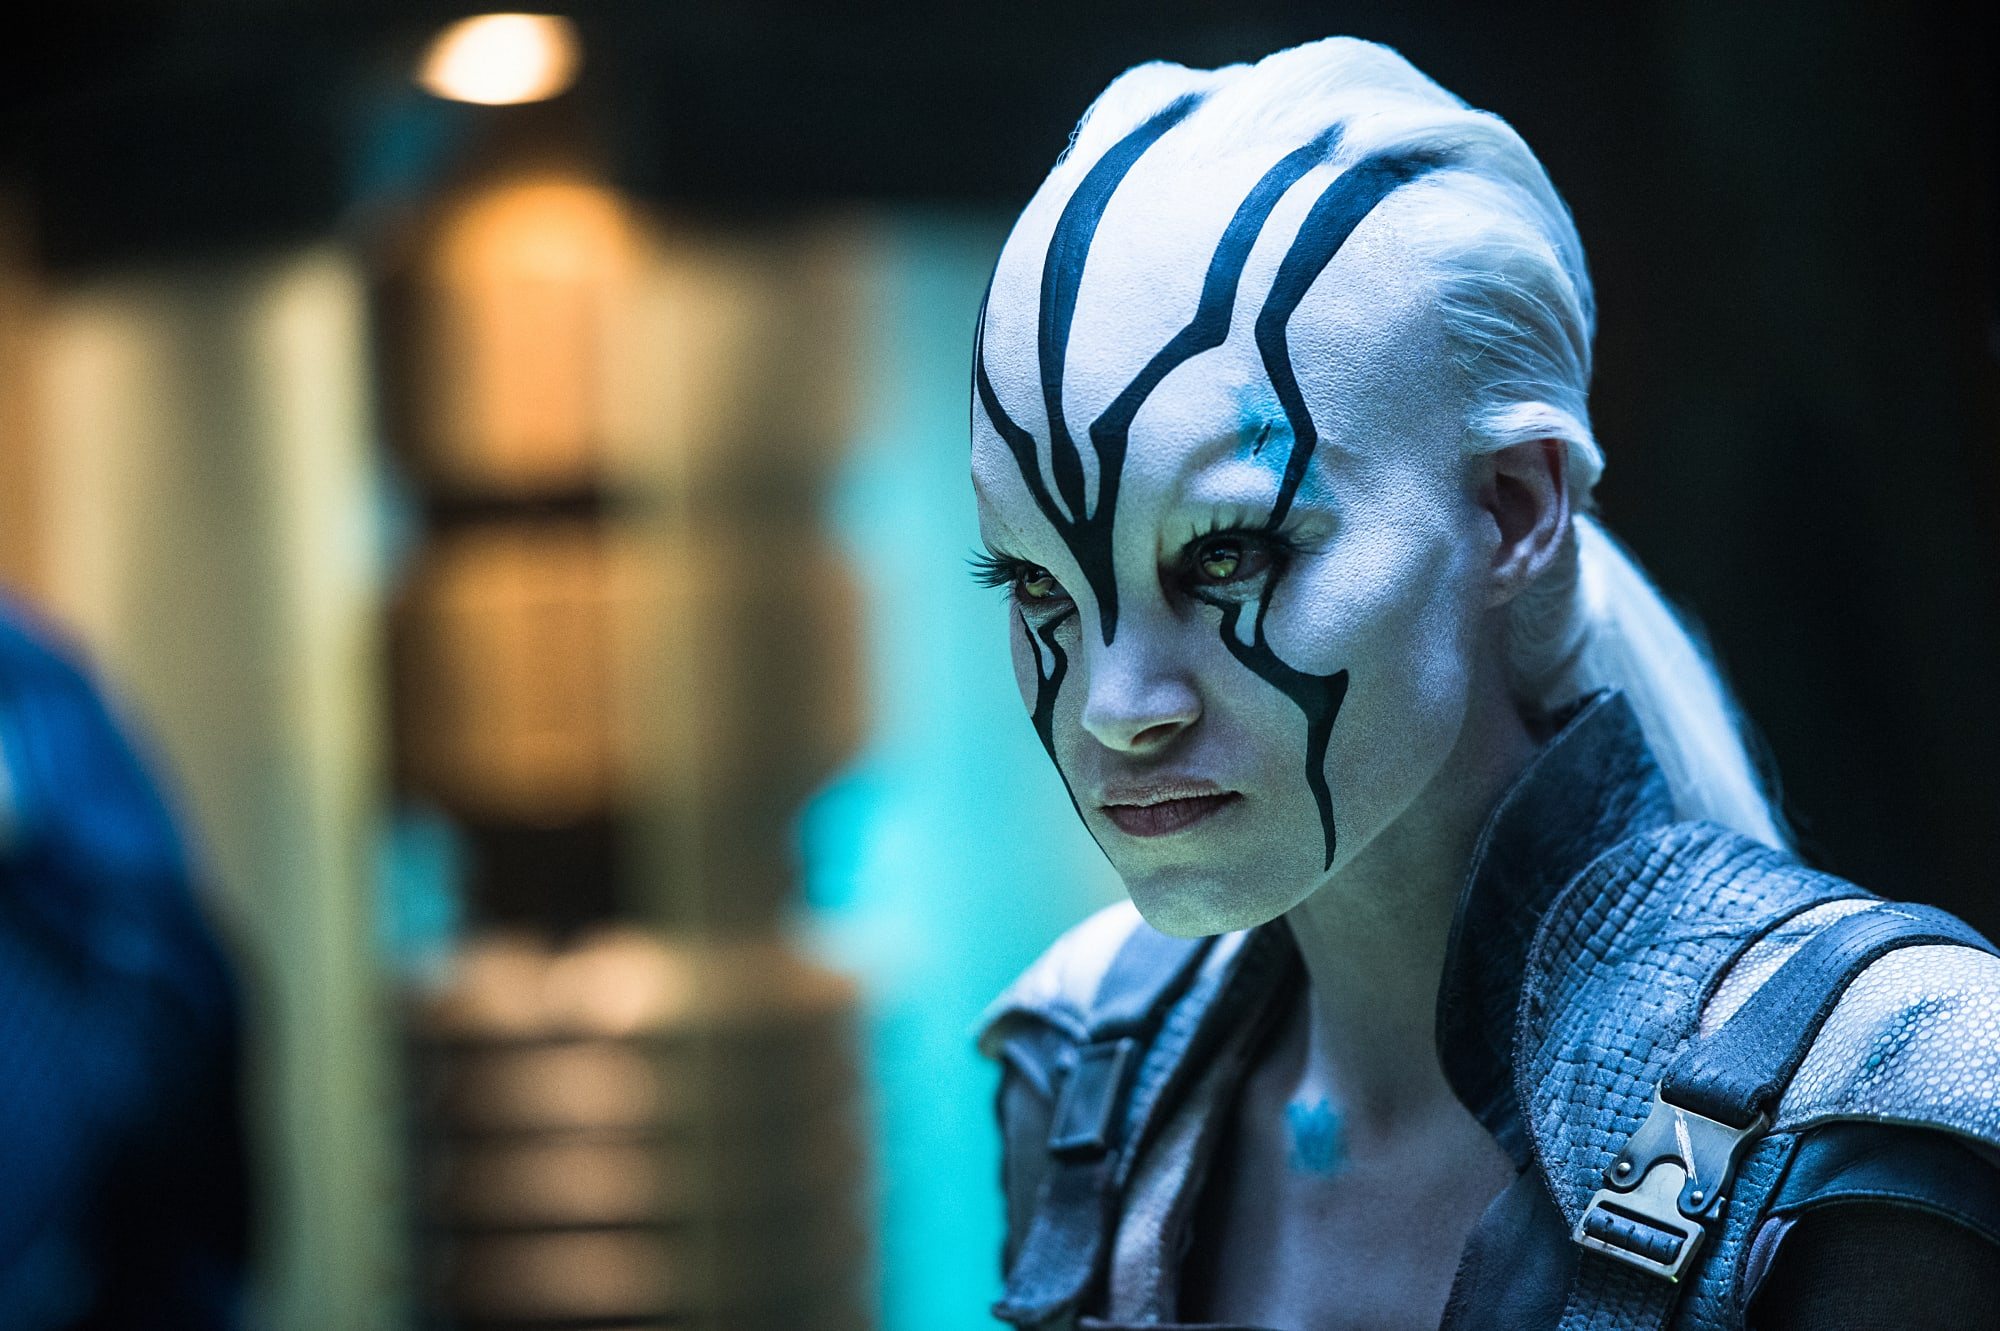 Star Trek: Beyond's sequel and not Quentin Tarantino's film should be next